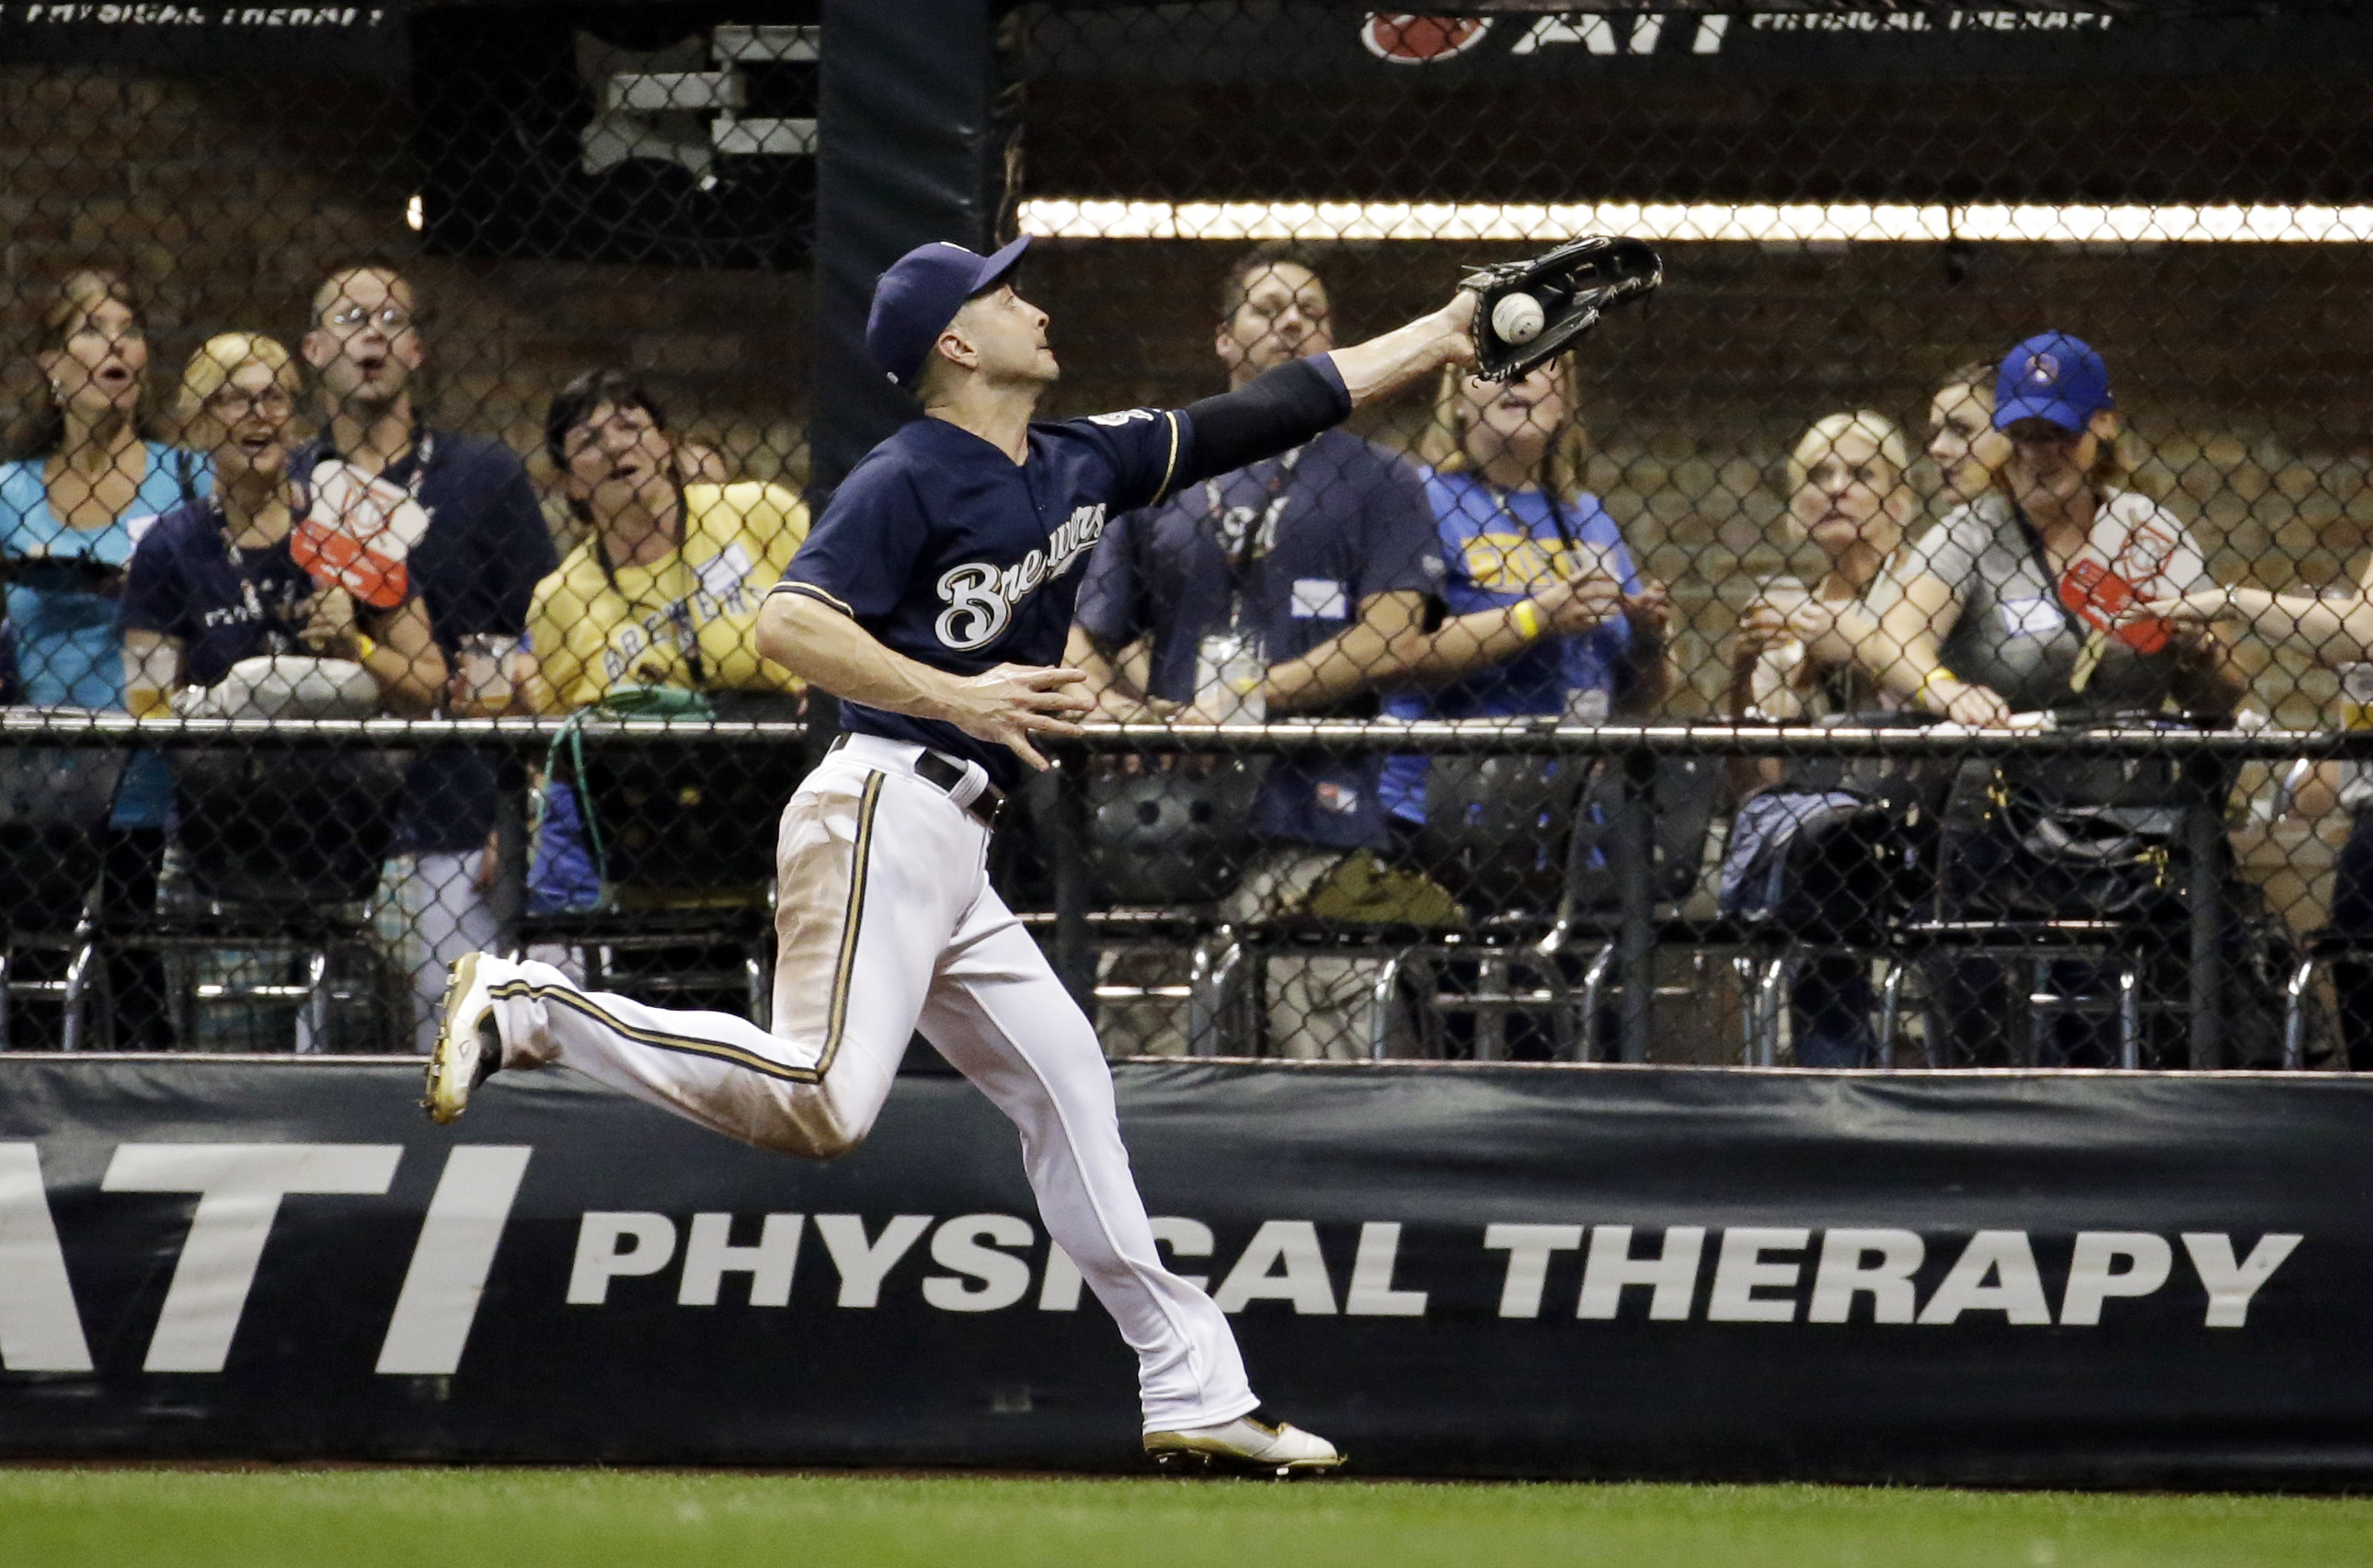 Milwaukee Brewers right fielder Ryan Braun makes a running catch on a ball hit by Pittsburgh Pirates' Francisco Cervelli during the third inning of a baseball game Tuesday, Sept. 1, 2015, in Milwaukee. (AP Photo/Morry Gash)